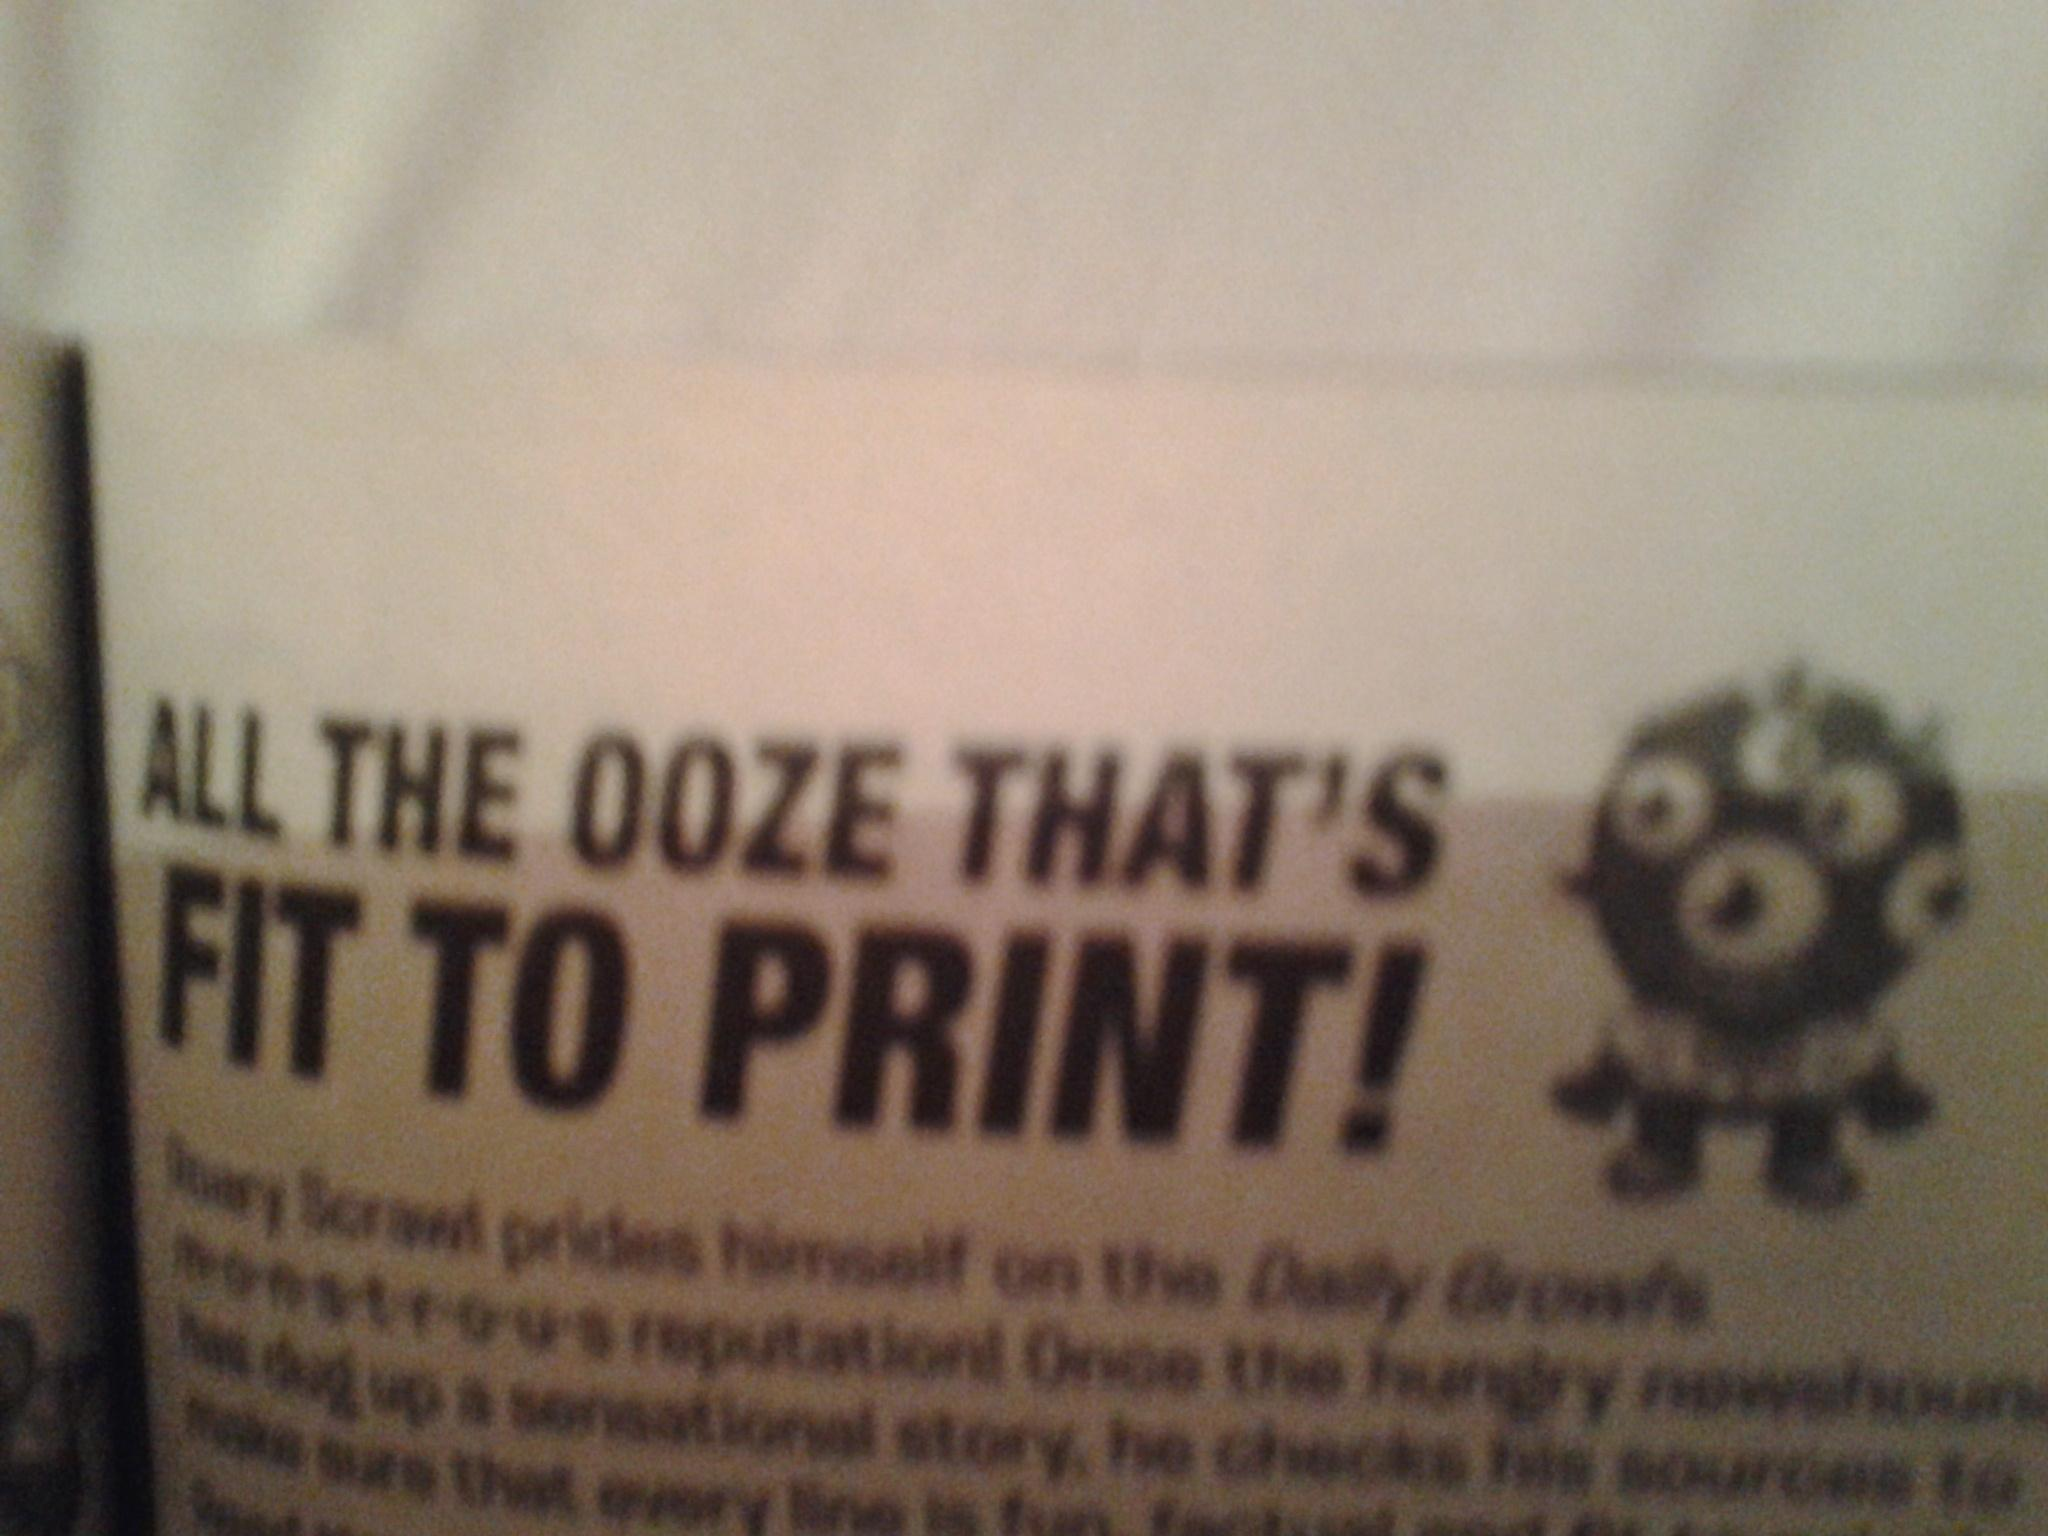 Ooze fit to print